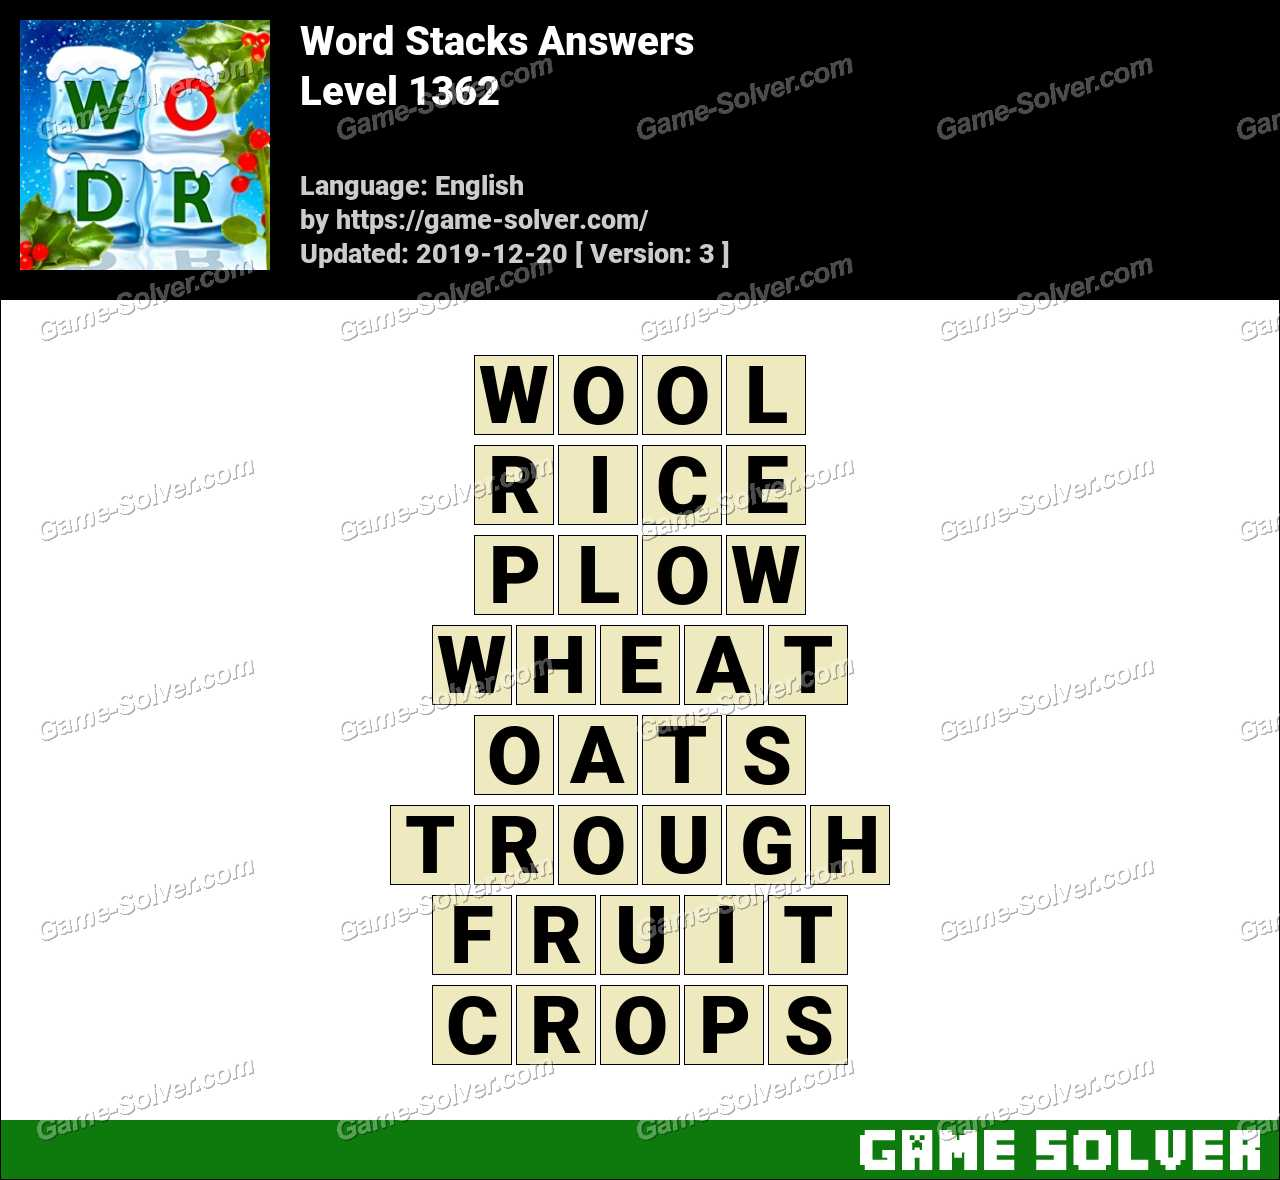 Word Stacks Level 1362 Answers